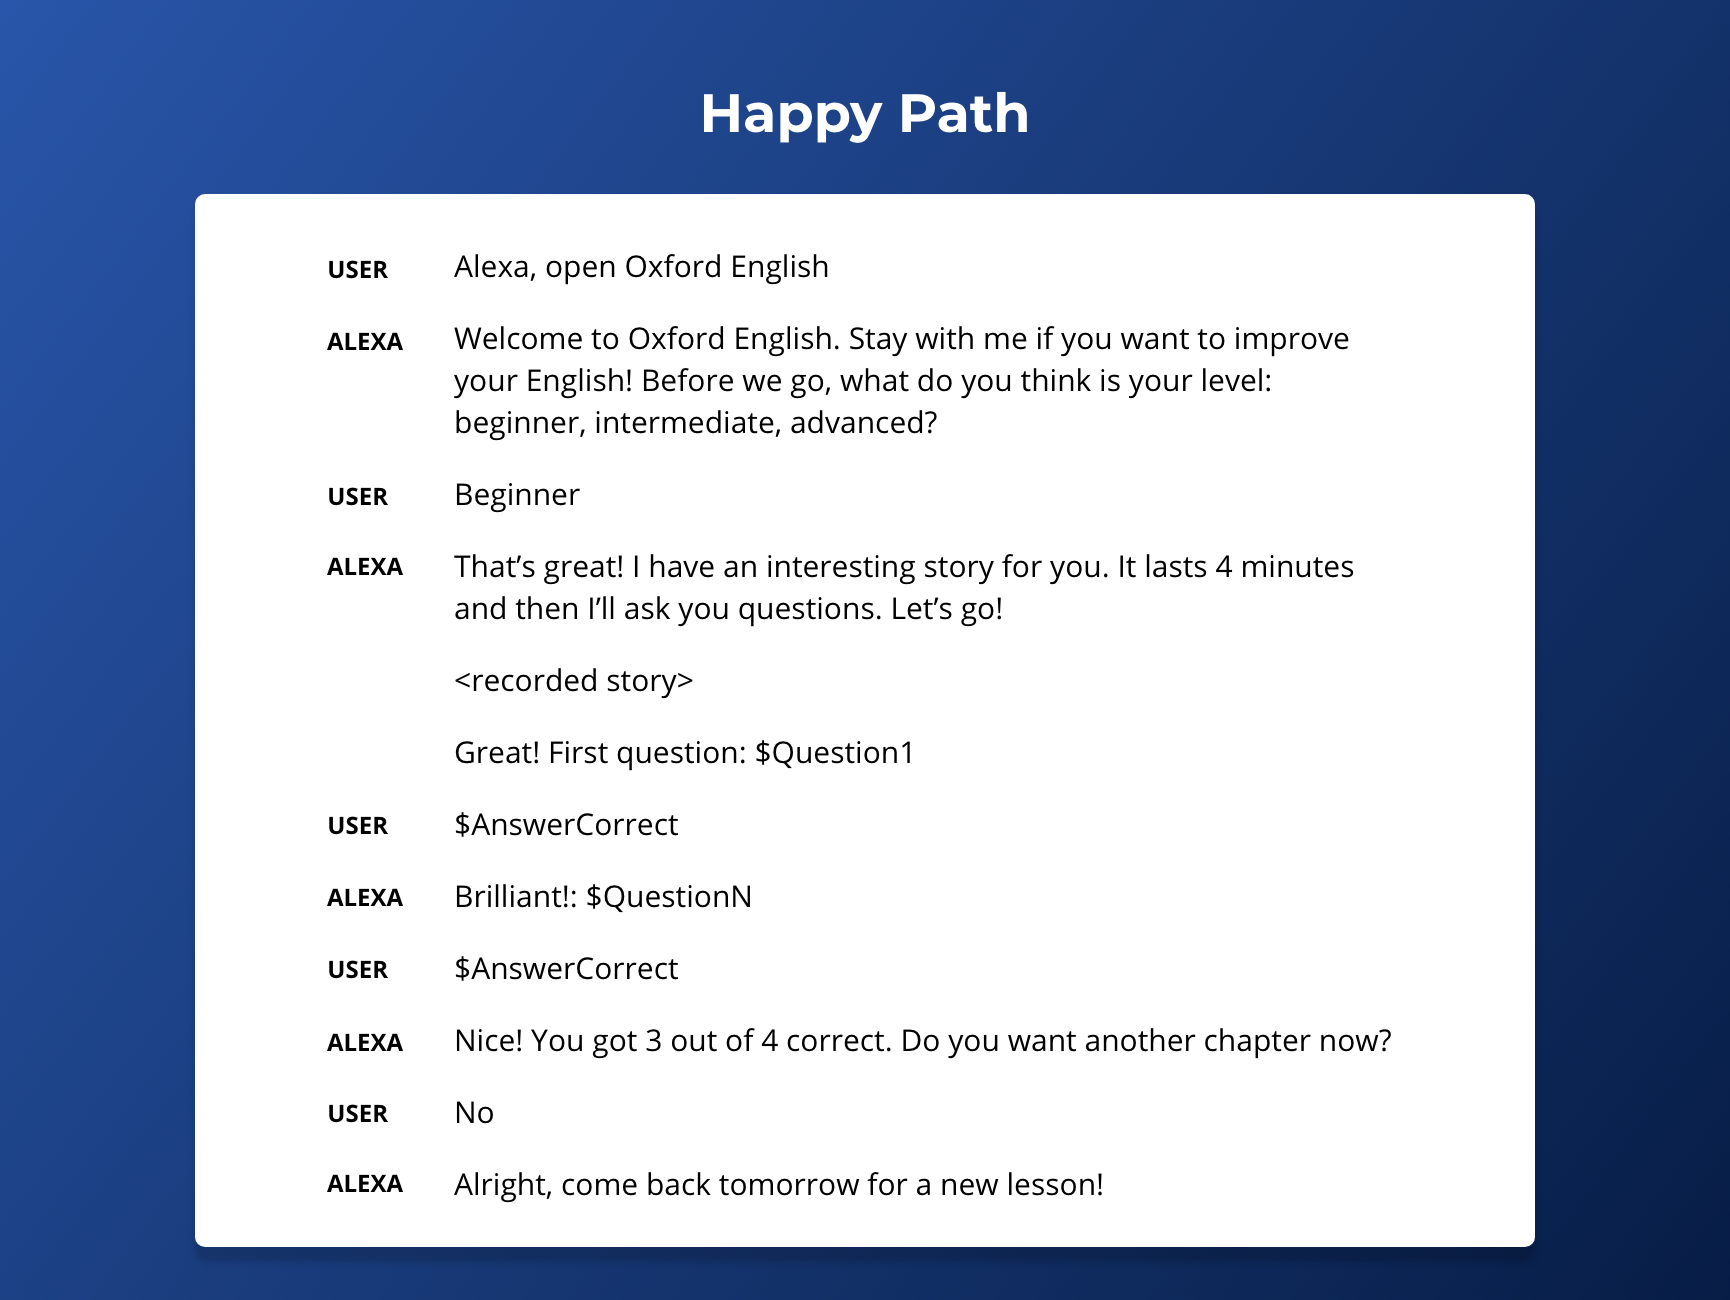 Happy path for the first conversation